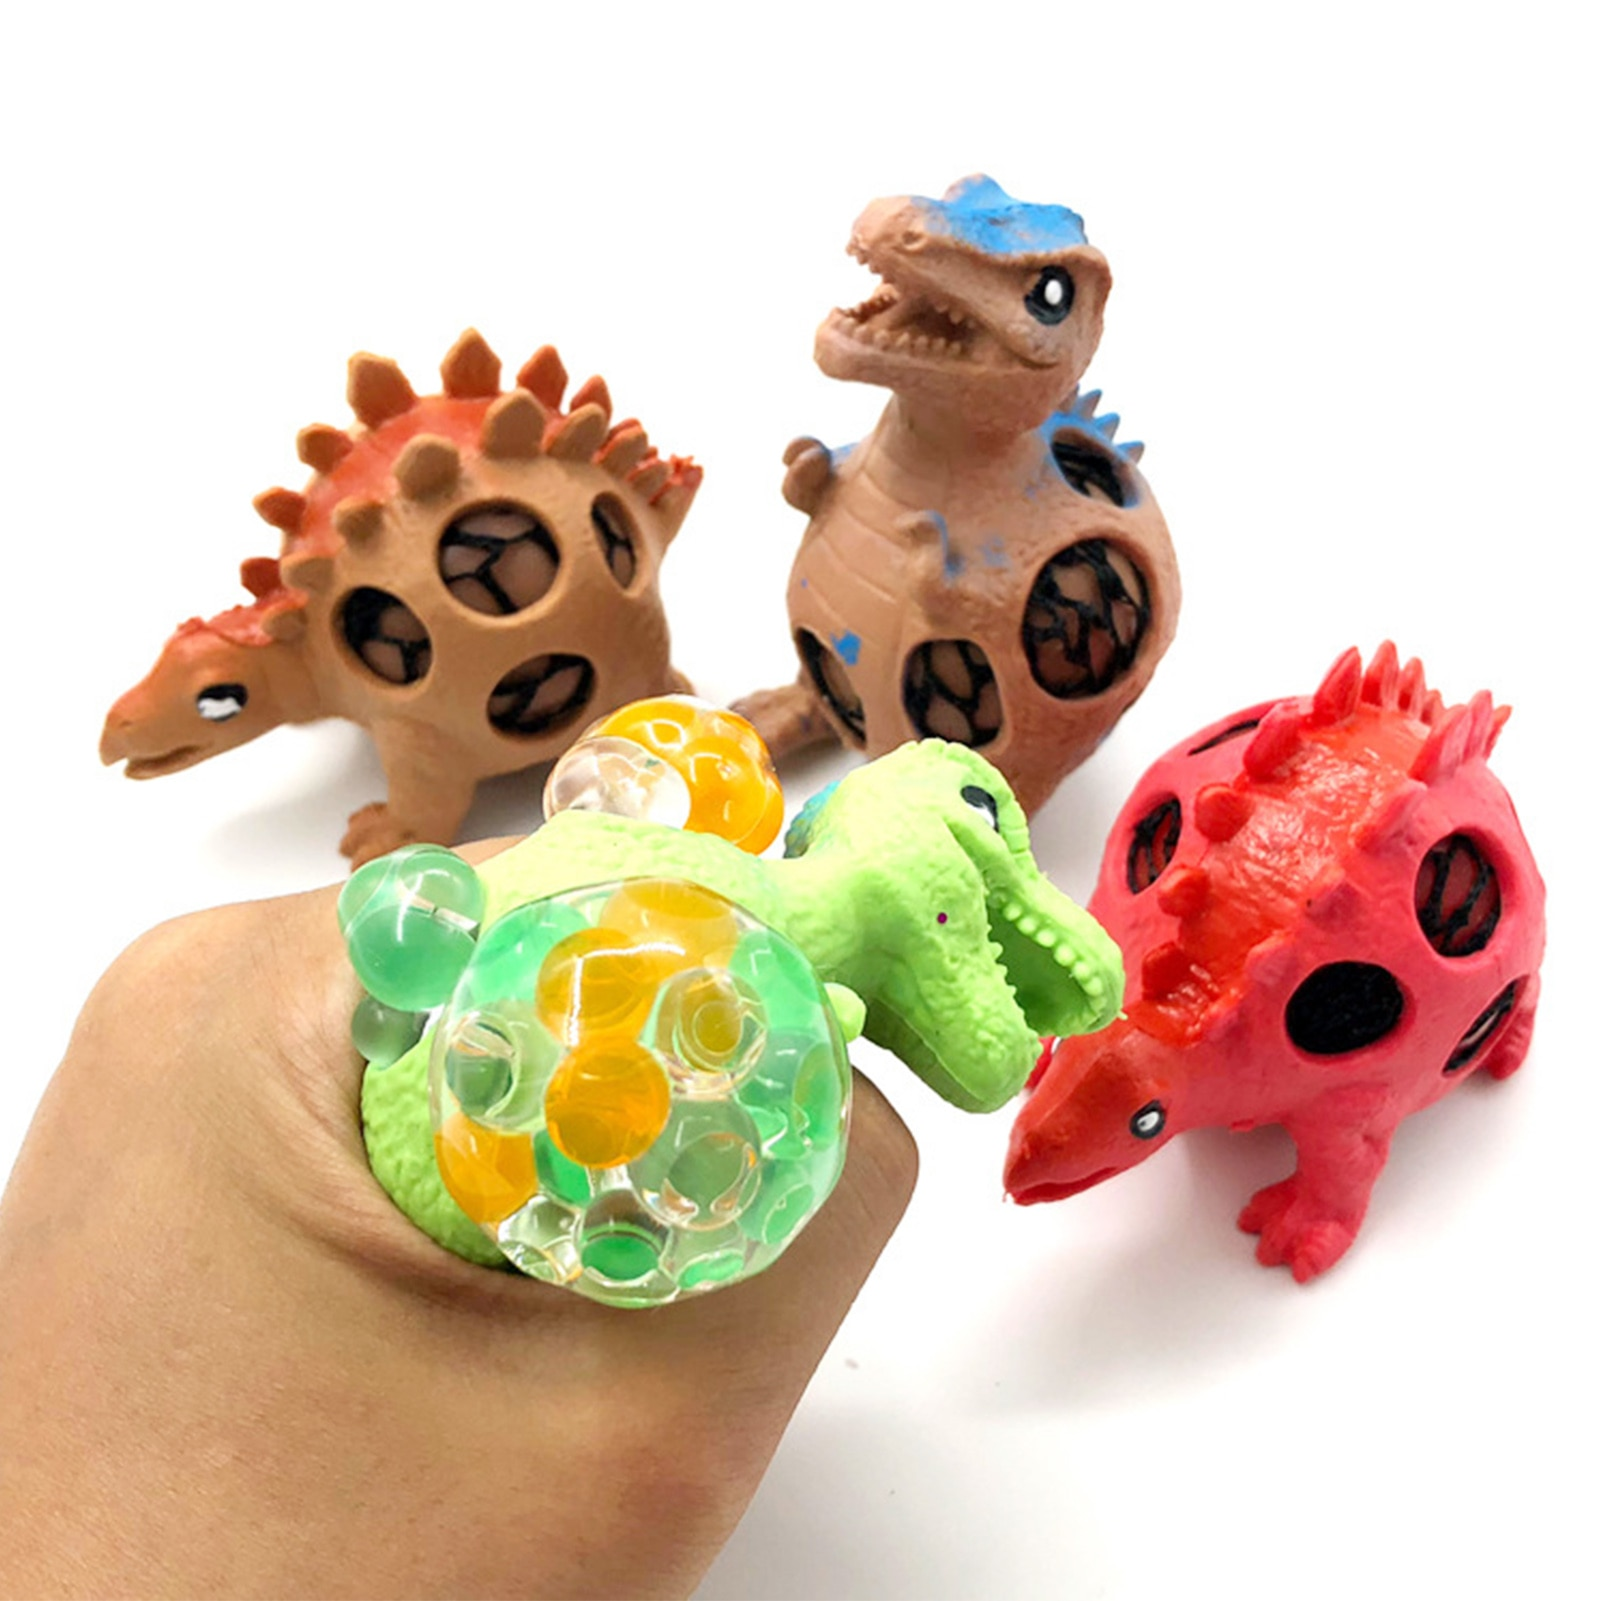 32 Pack Portable Fidget Sensory Toys Set Antistress Novelty Durable Toy Adults Kids Simple Dimple Office Stress Relief Education enlarge